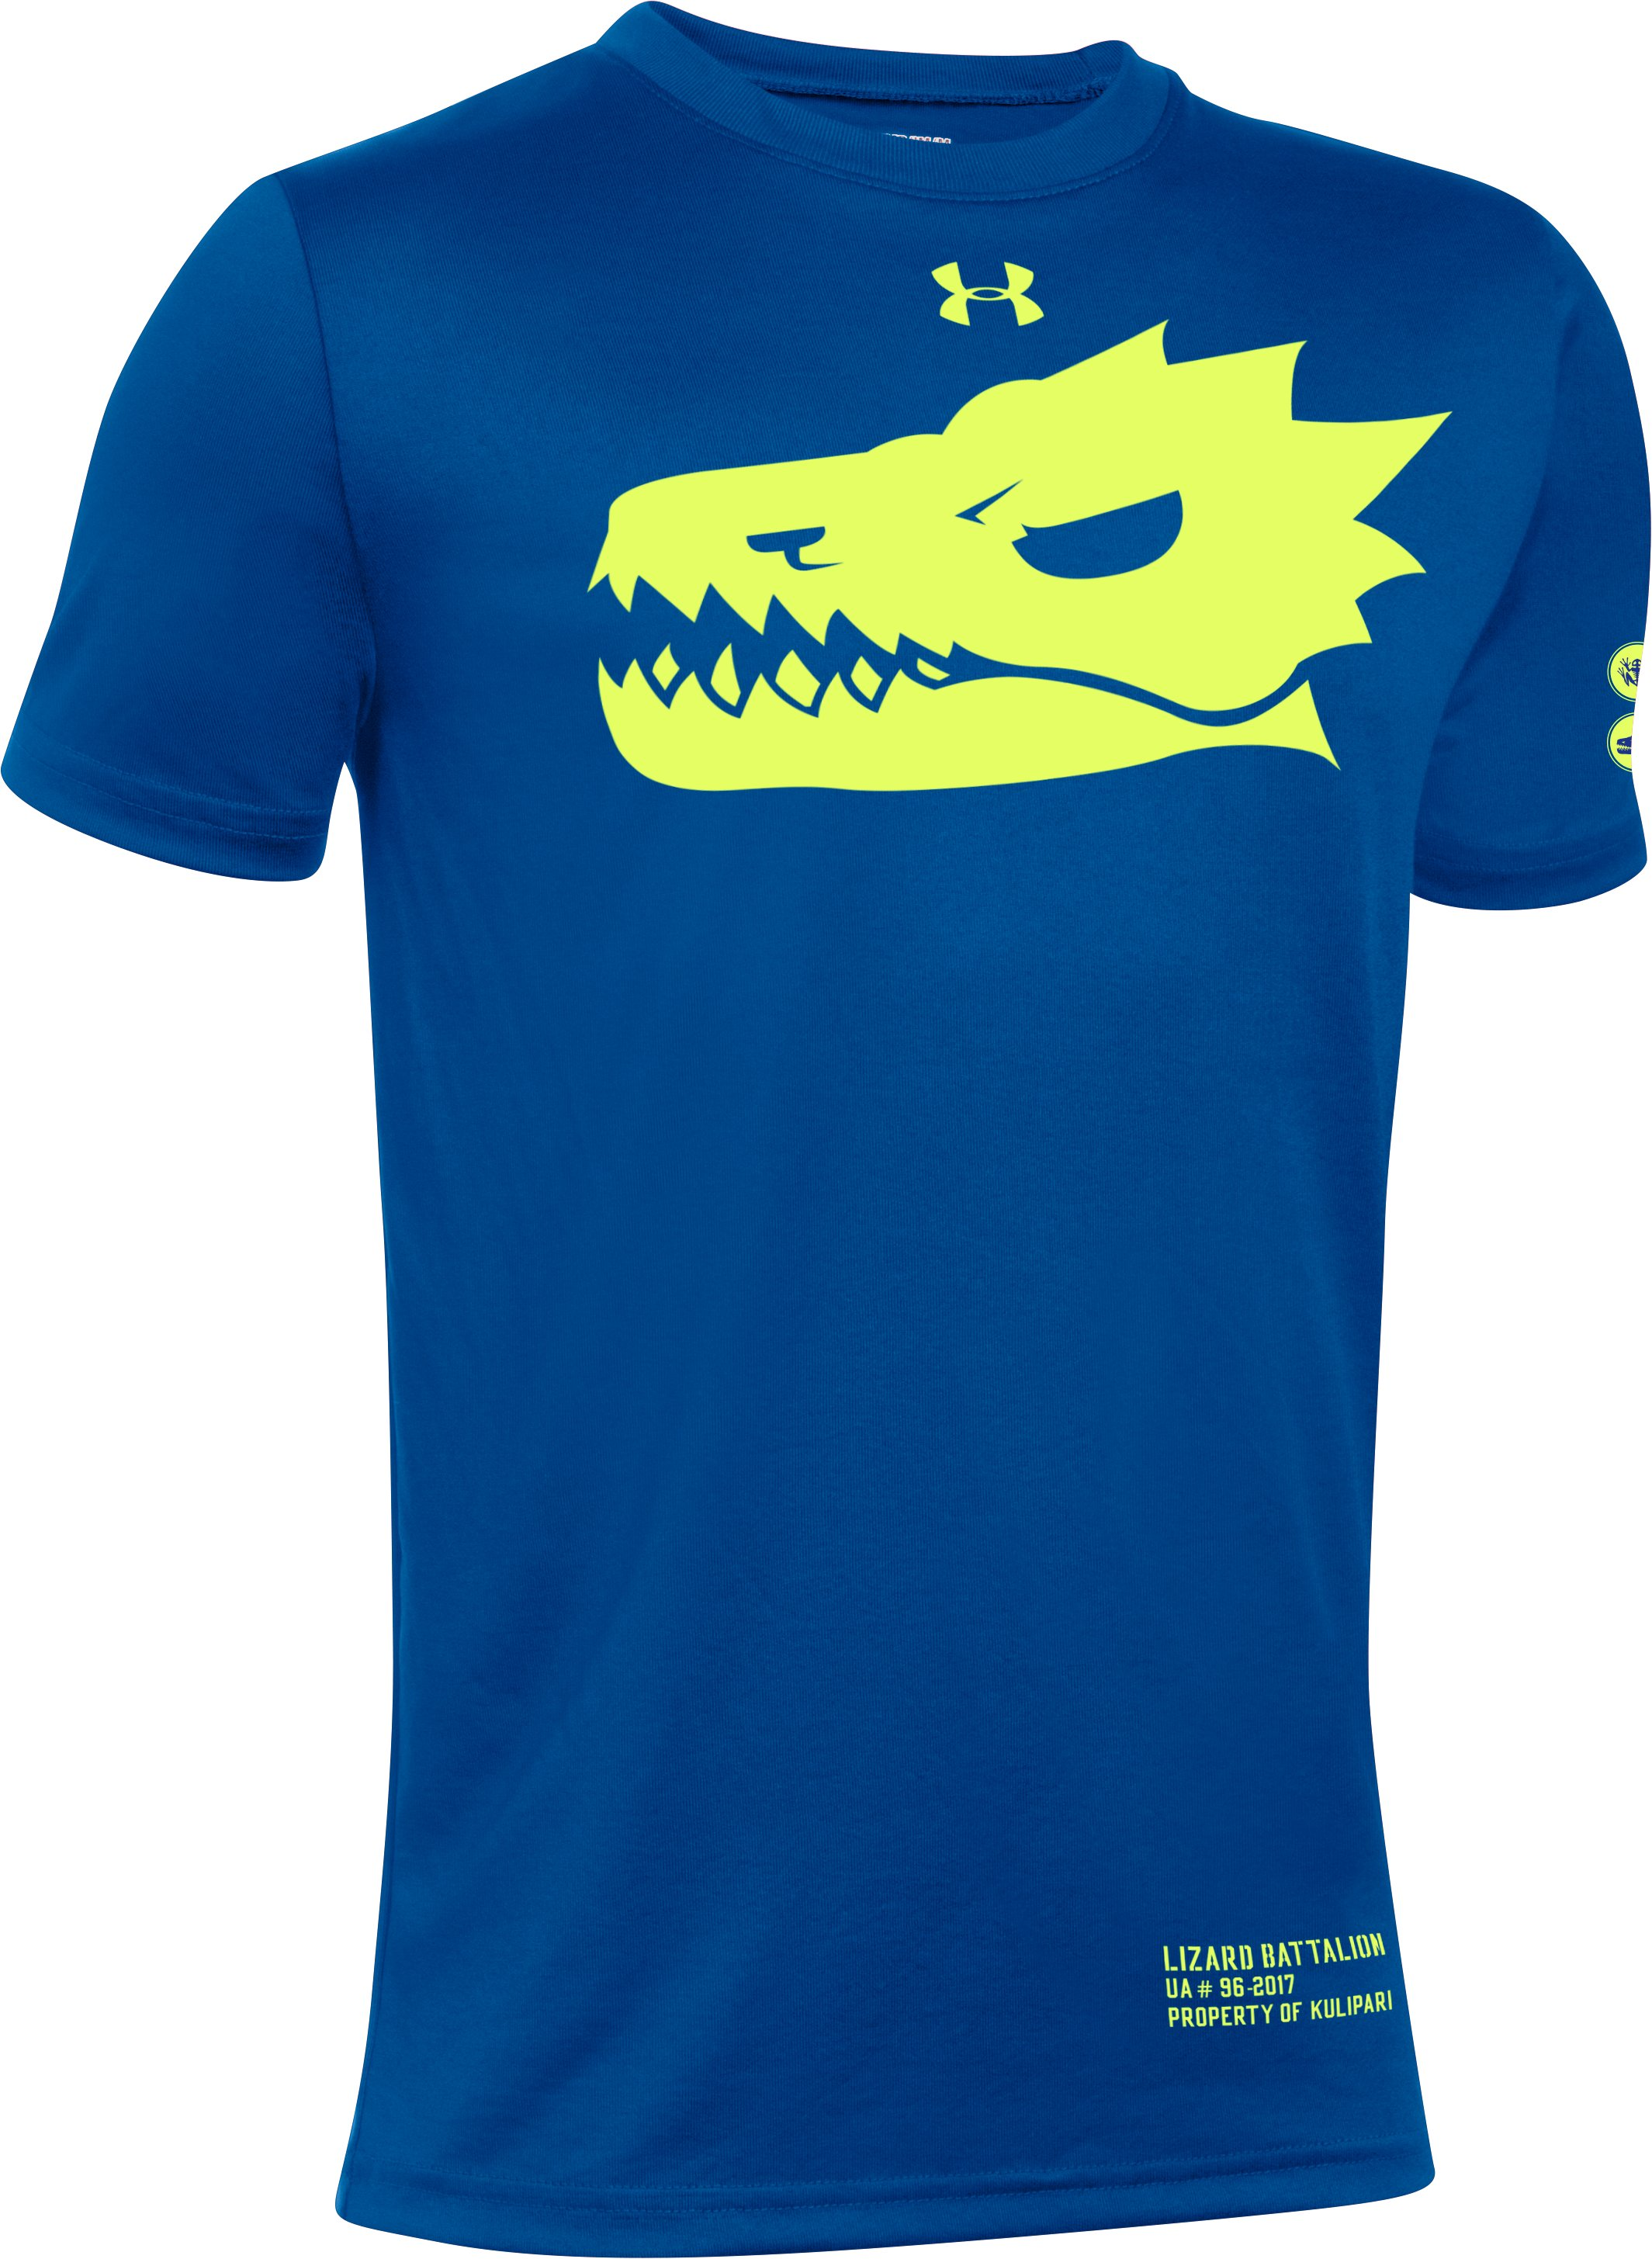 Kids' Kulipari UA Lizard Battalion T-Shirt, Royal, zoomed image